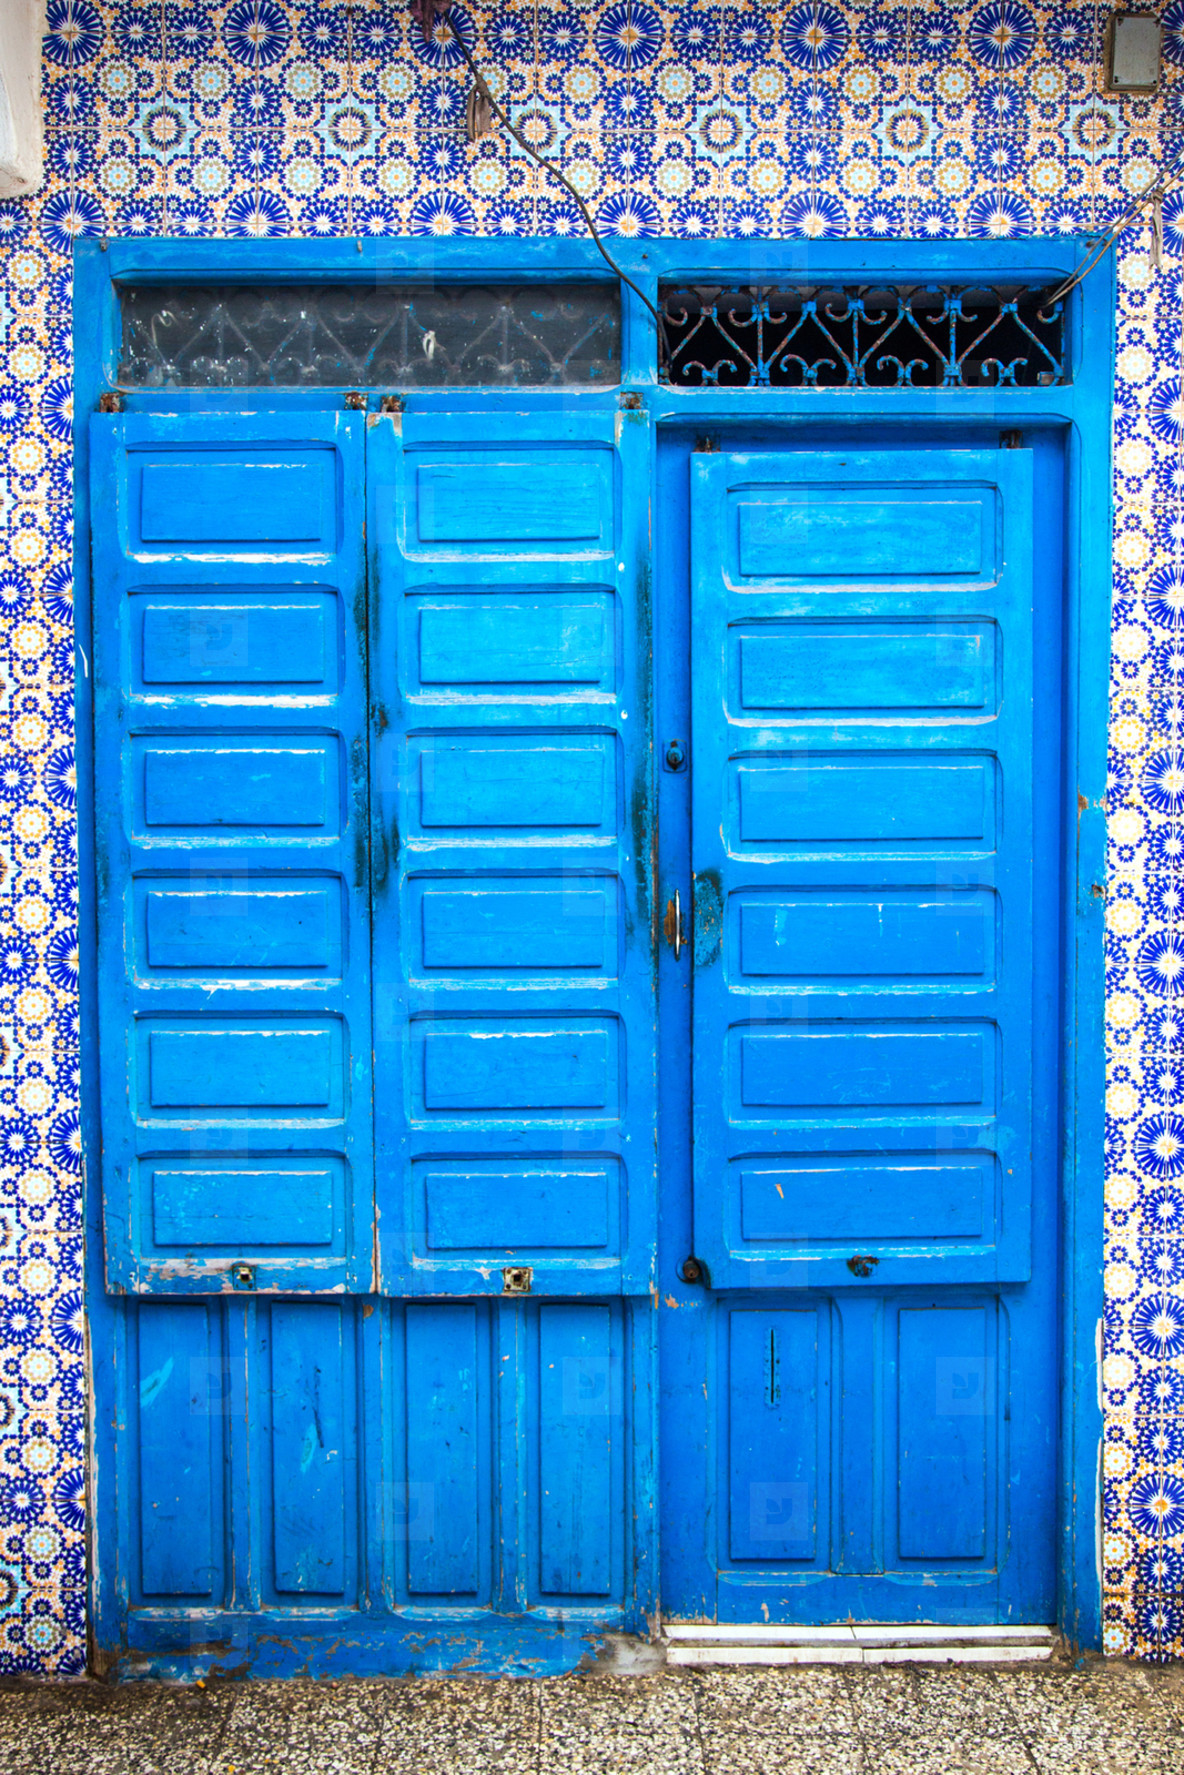 Doors and Windows 04